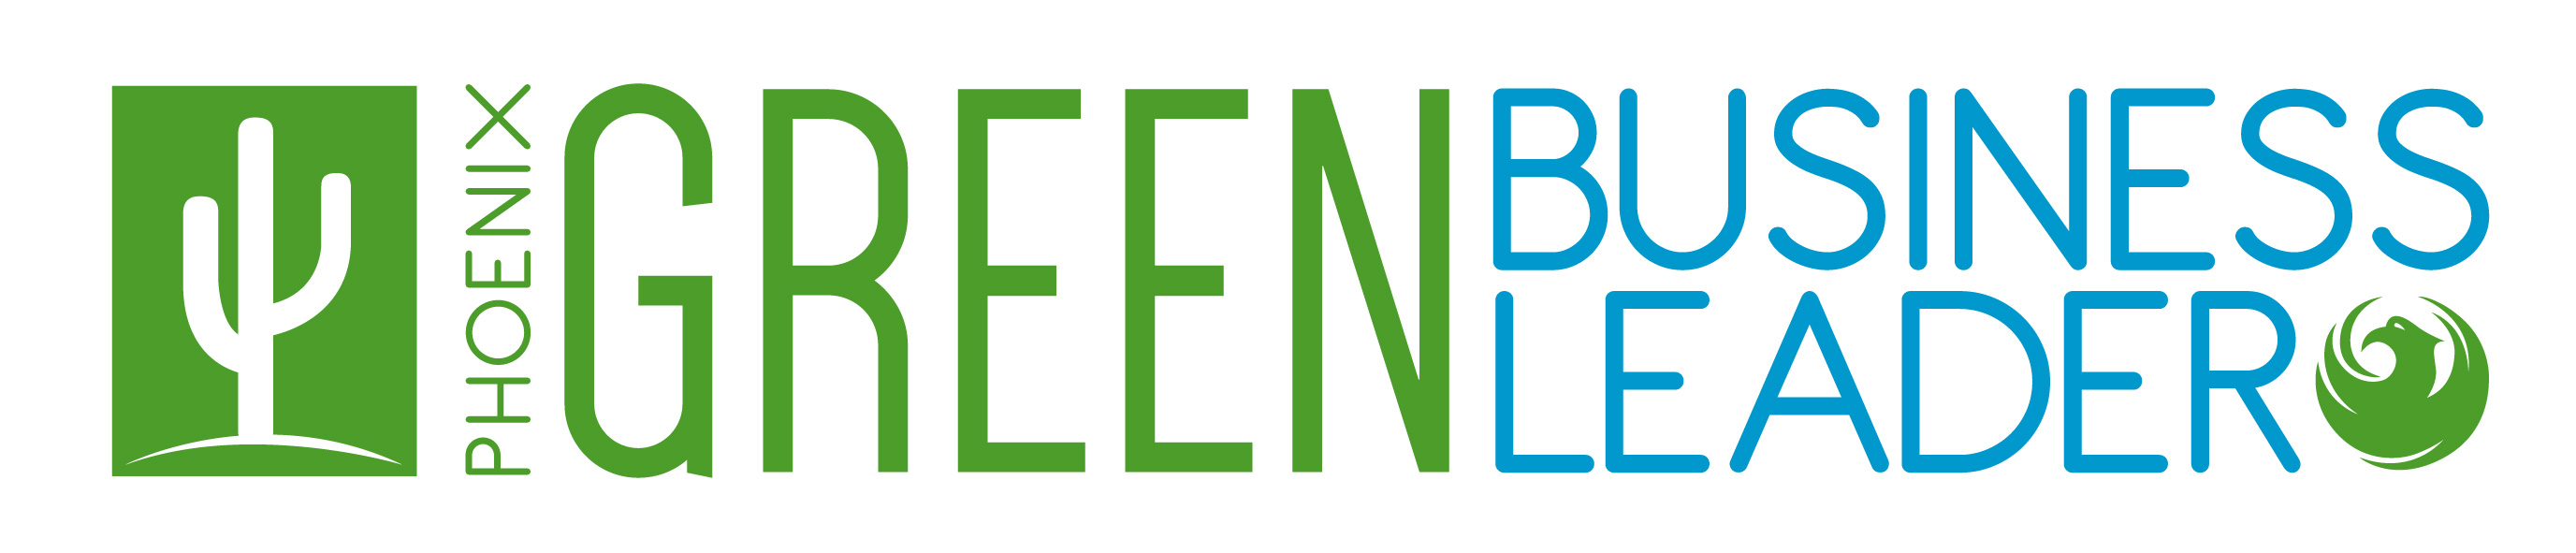 Phoenix Green Business Leaders Banner